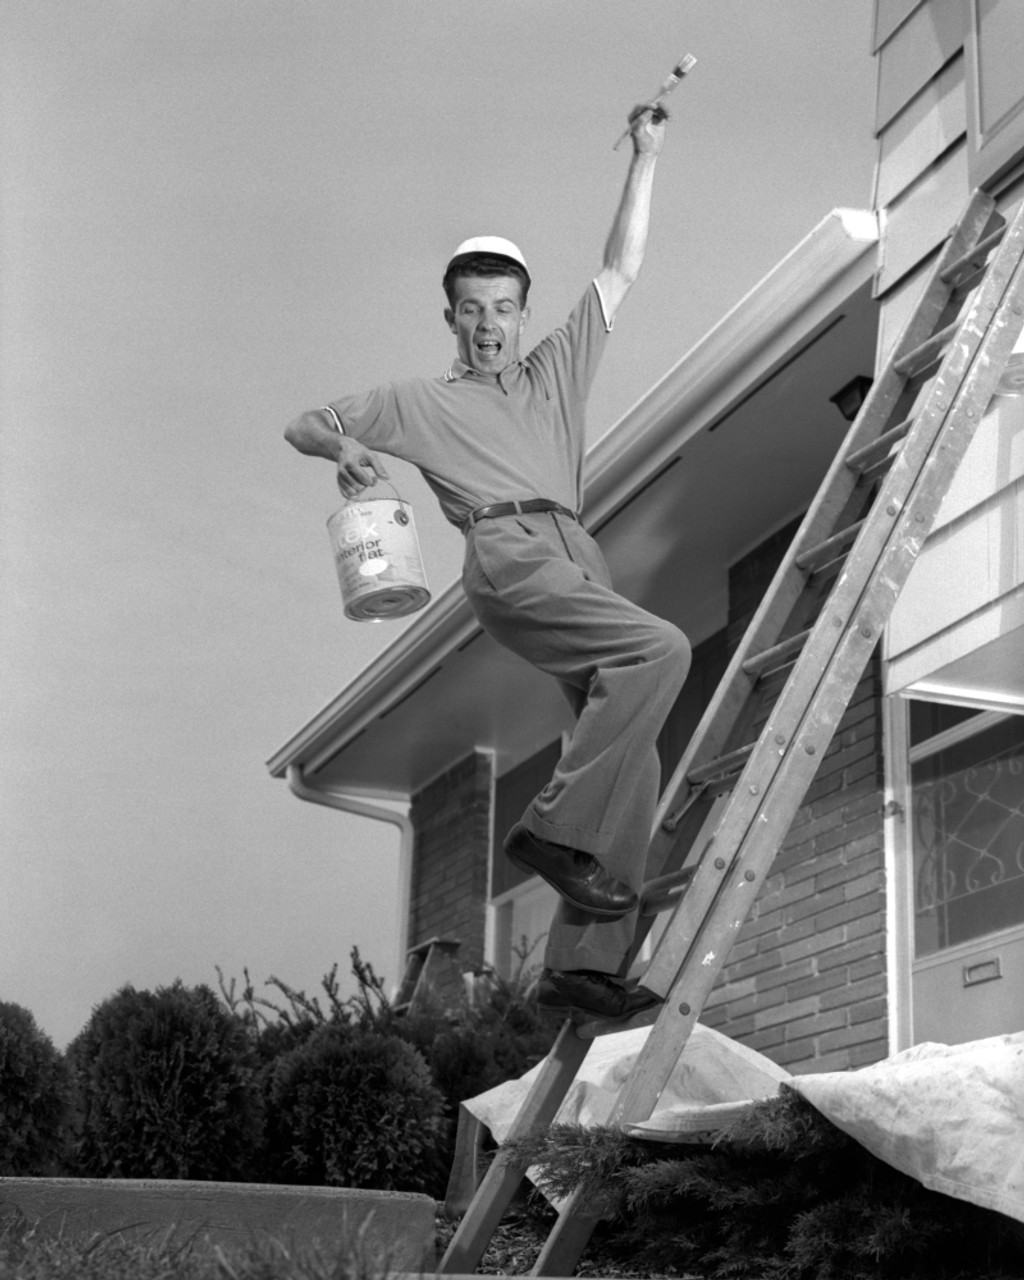 1960s Man Falling Off Of Ladder While Painting House Poster Print By  Vintage Collection - Item # VARPPI176551